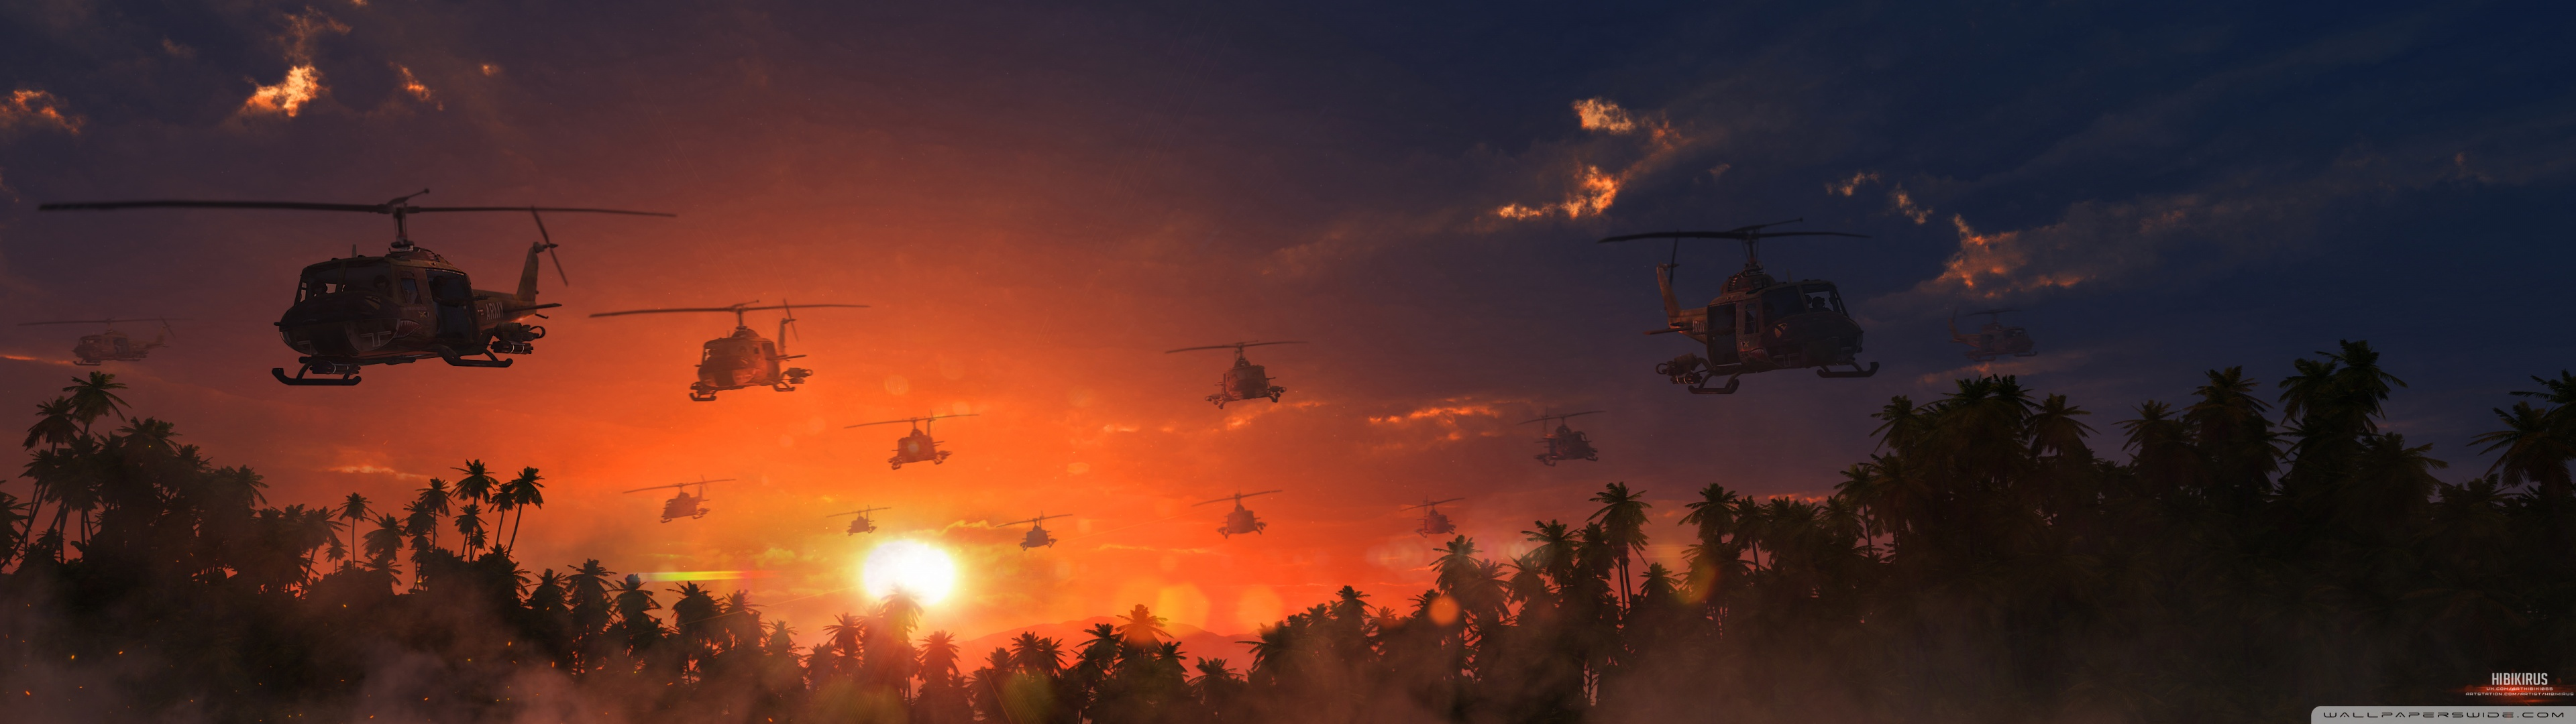 Apocalypse Now HD desktop wallpaper Widescreen 3840x1080